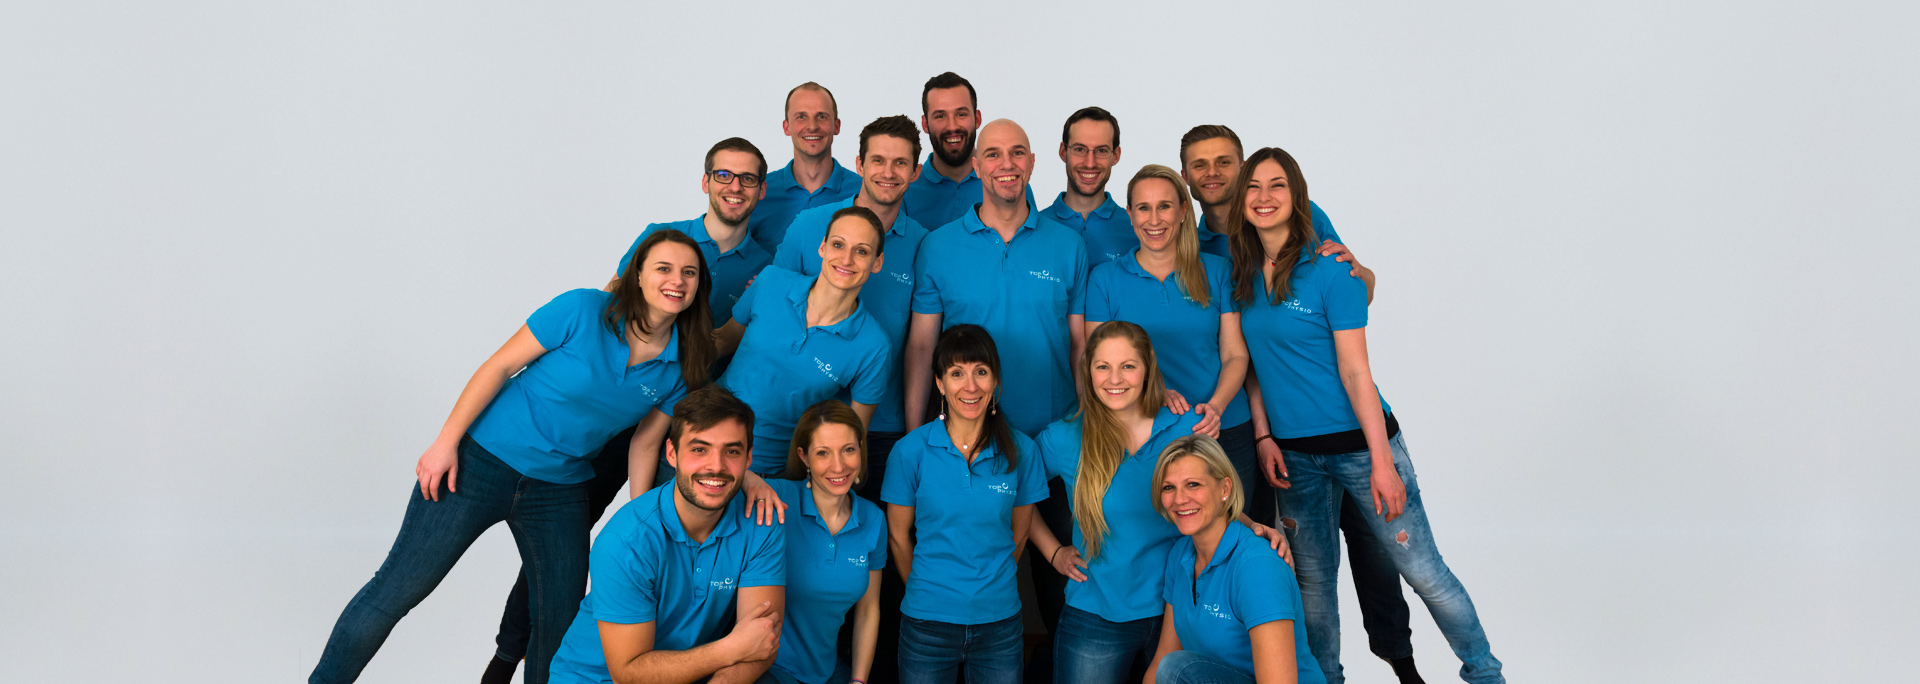 Top Physioat Physiotherapie 1060 1030 1220 Wien